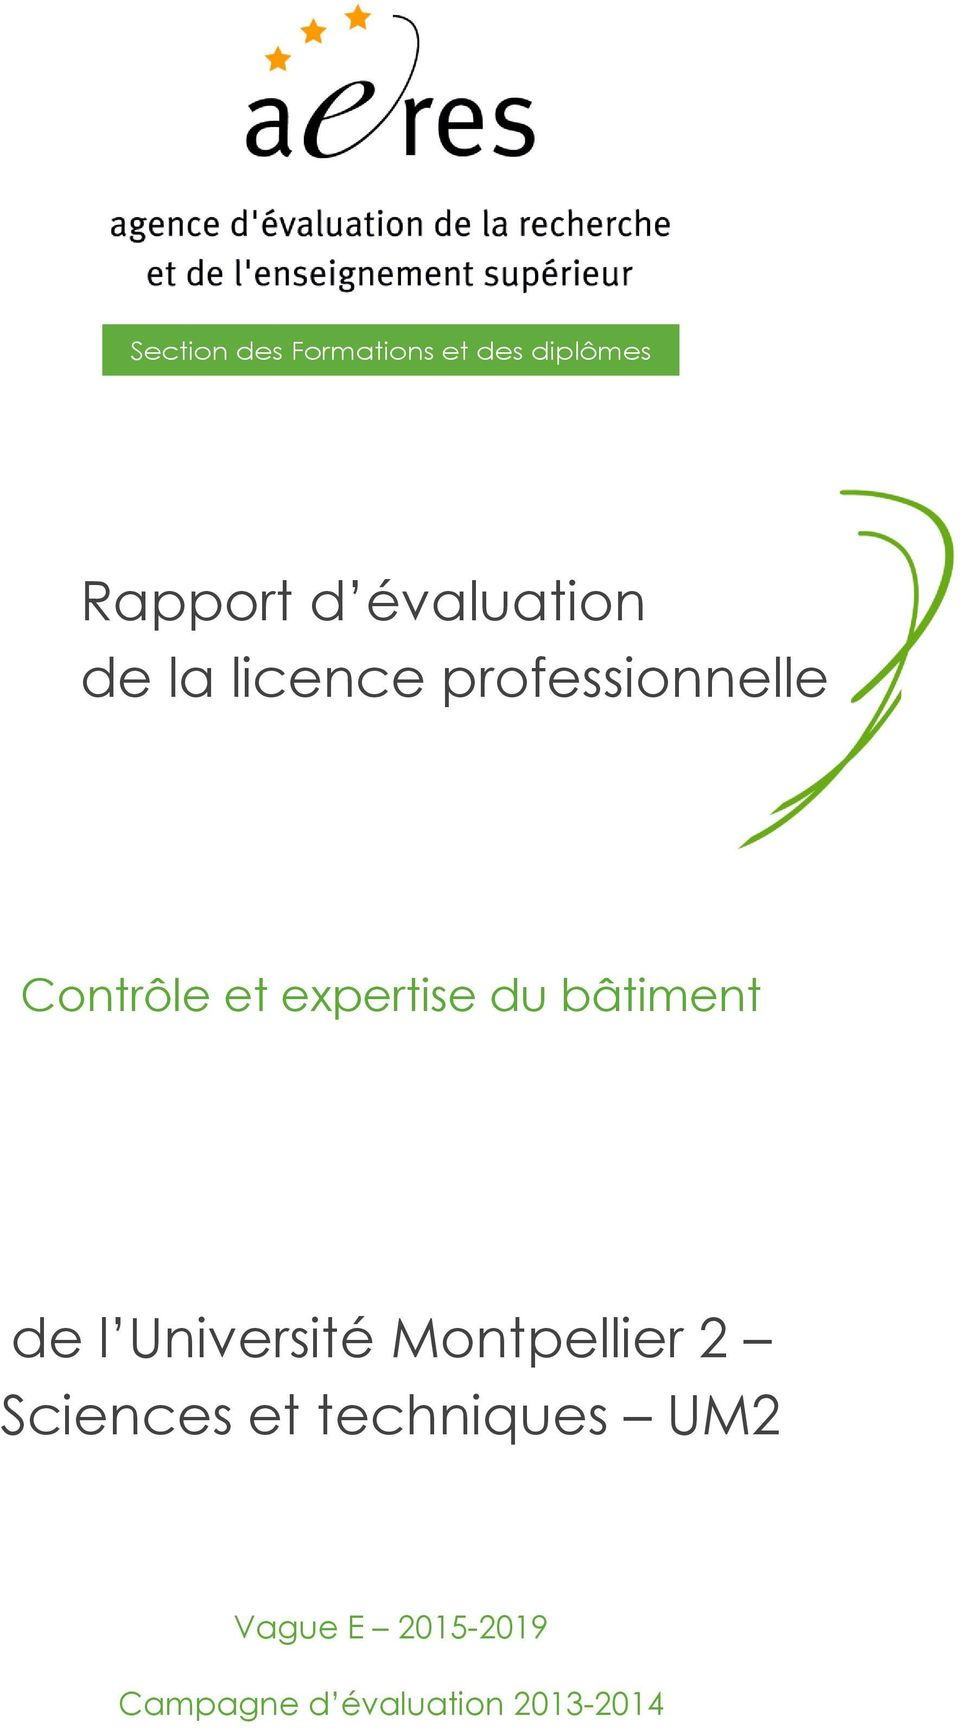 expertise du bâtiment de l Université Montpellier 2